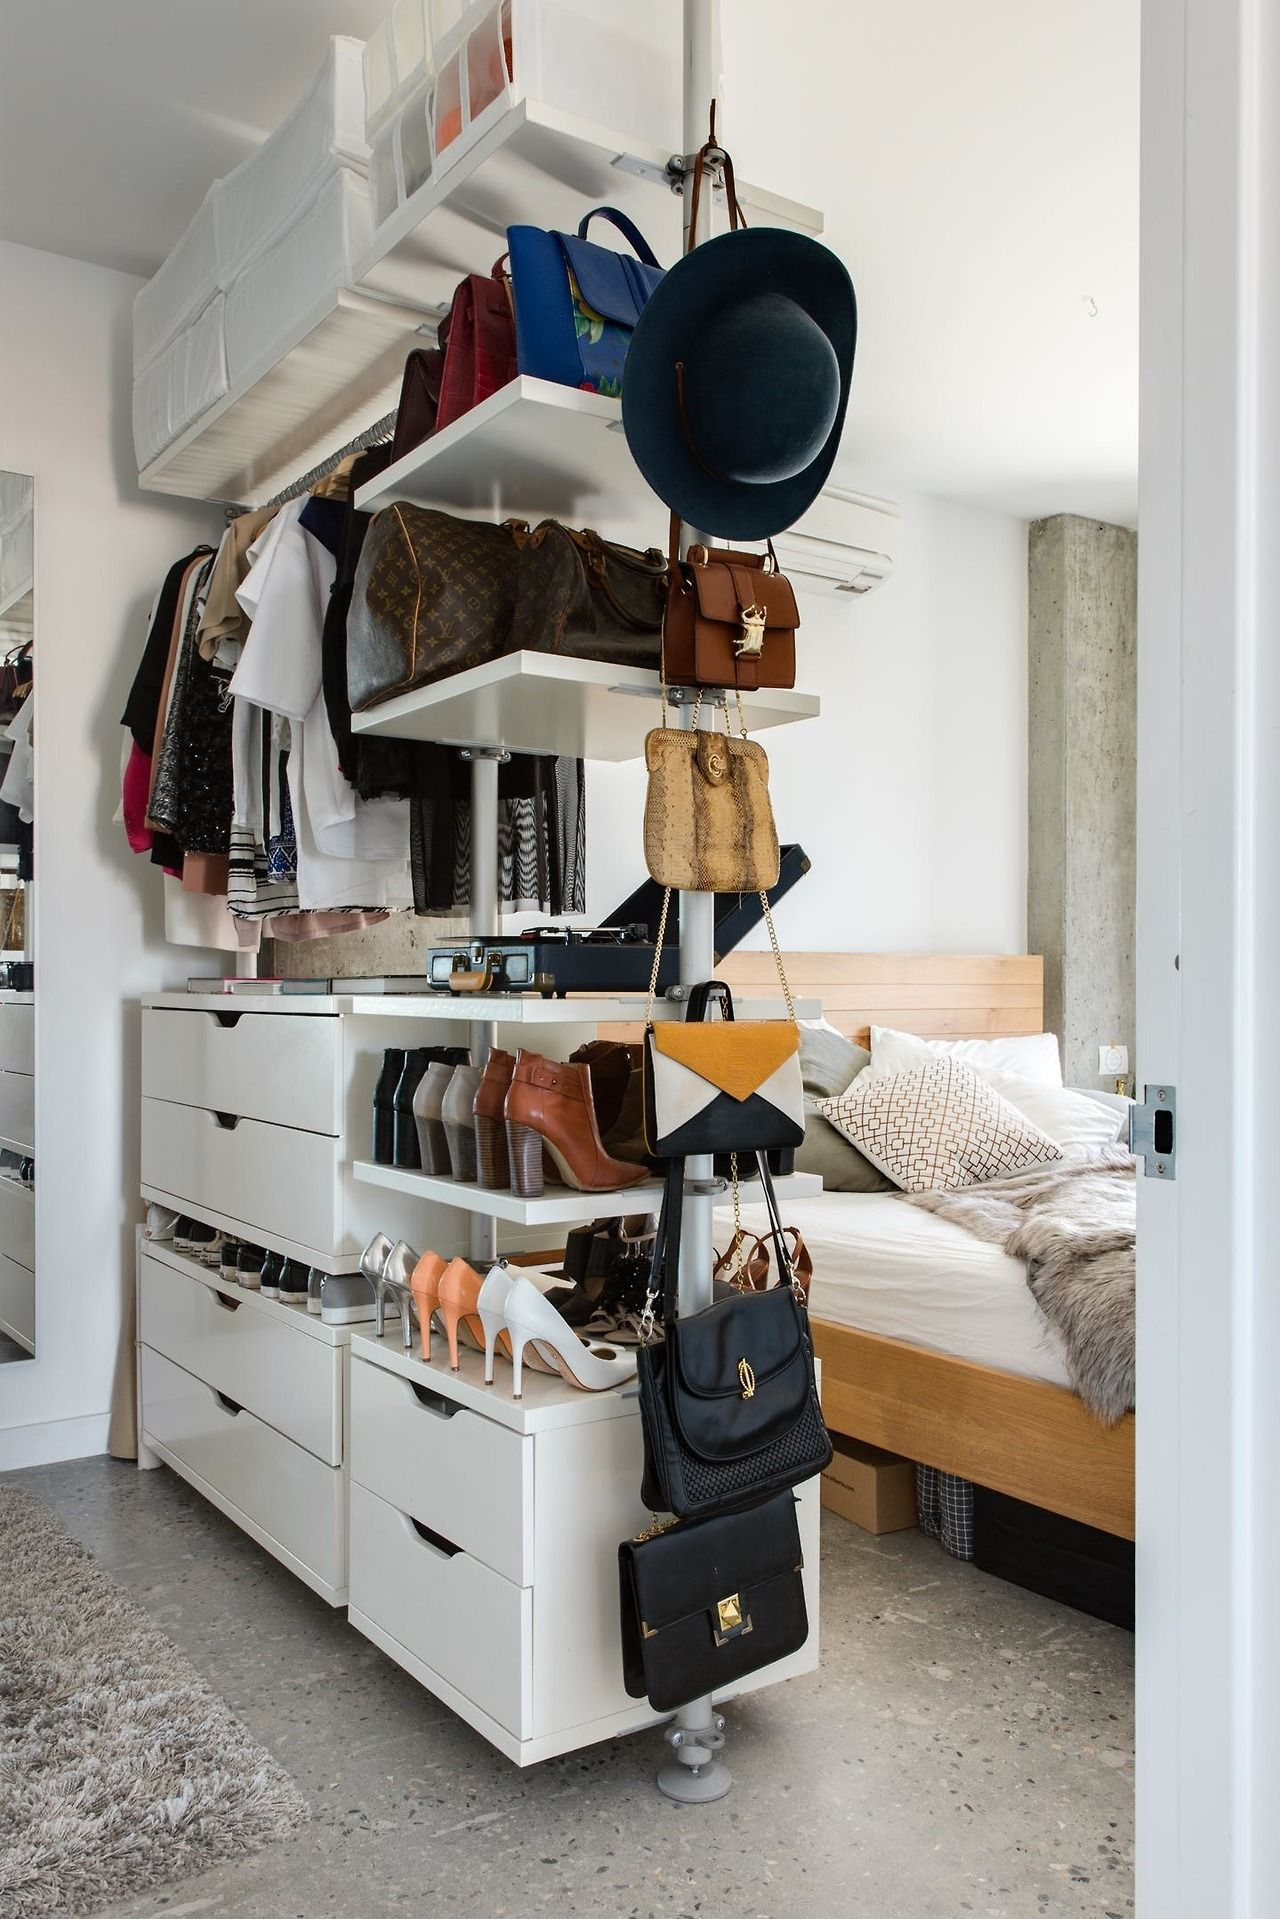 Bedroom with open wardrobe room divider compact living